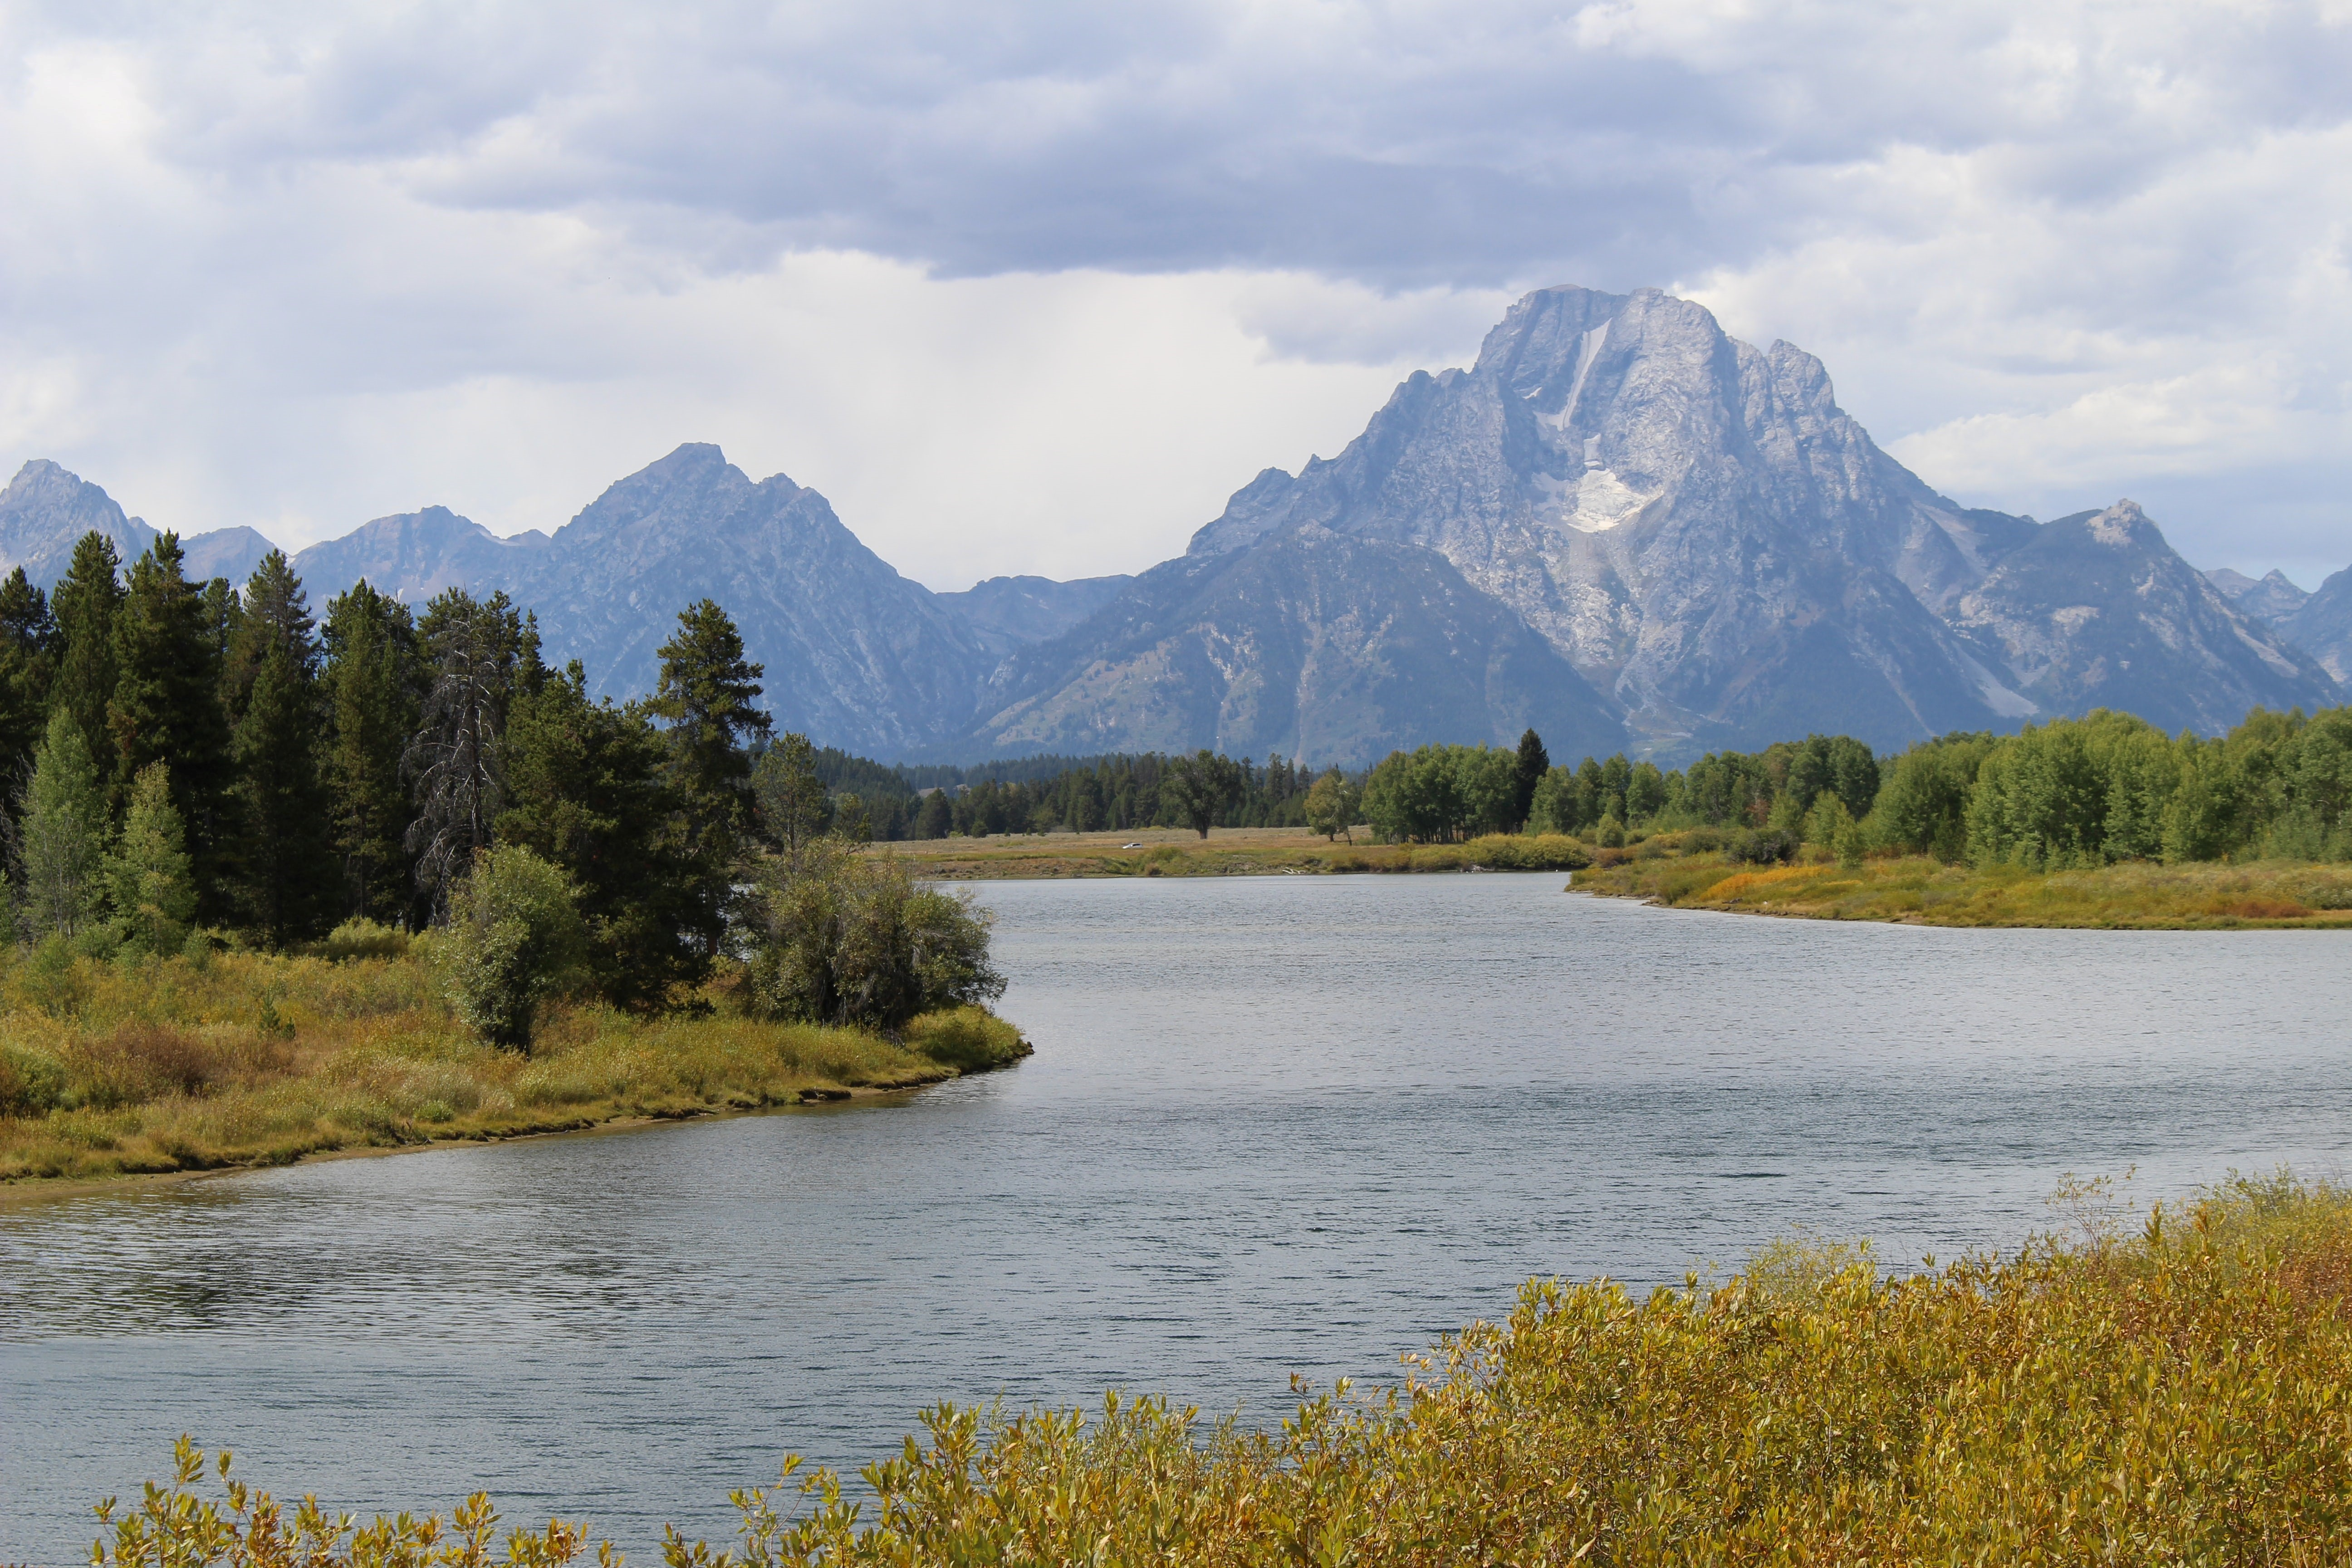 A view of the Snake River with the Tetons in the background on an overcast day.